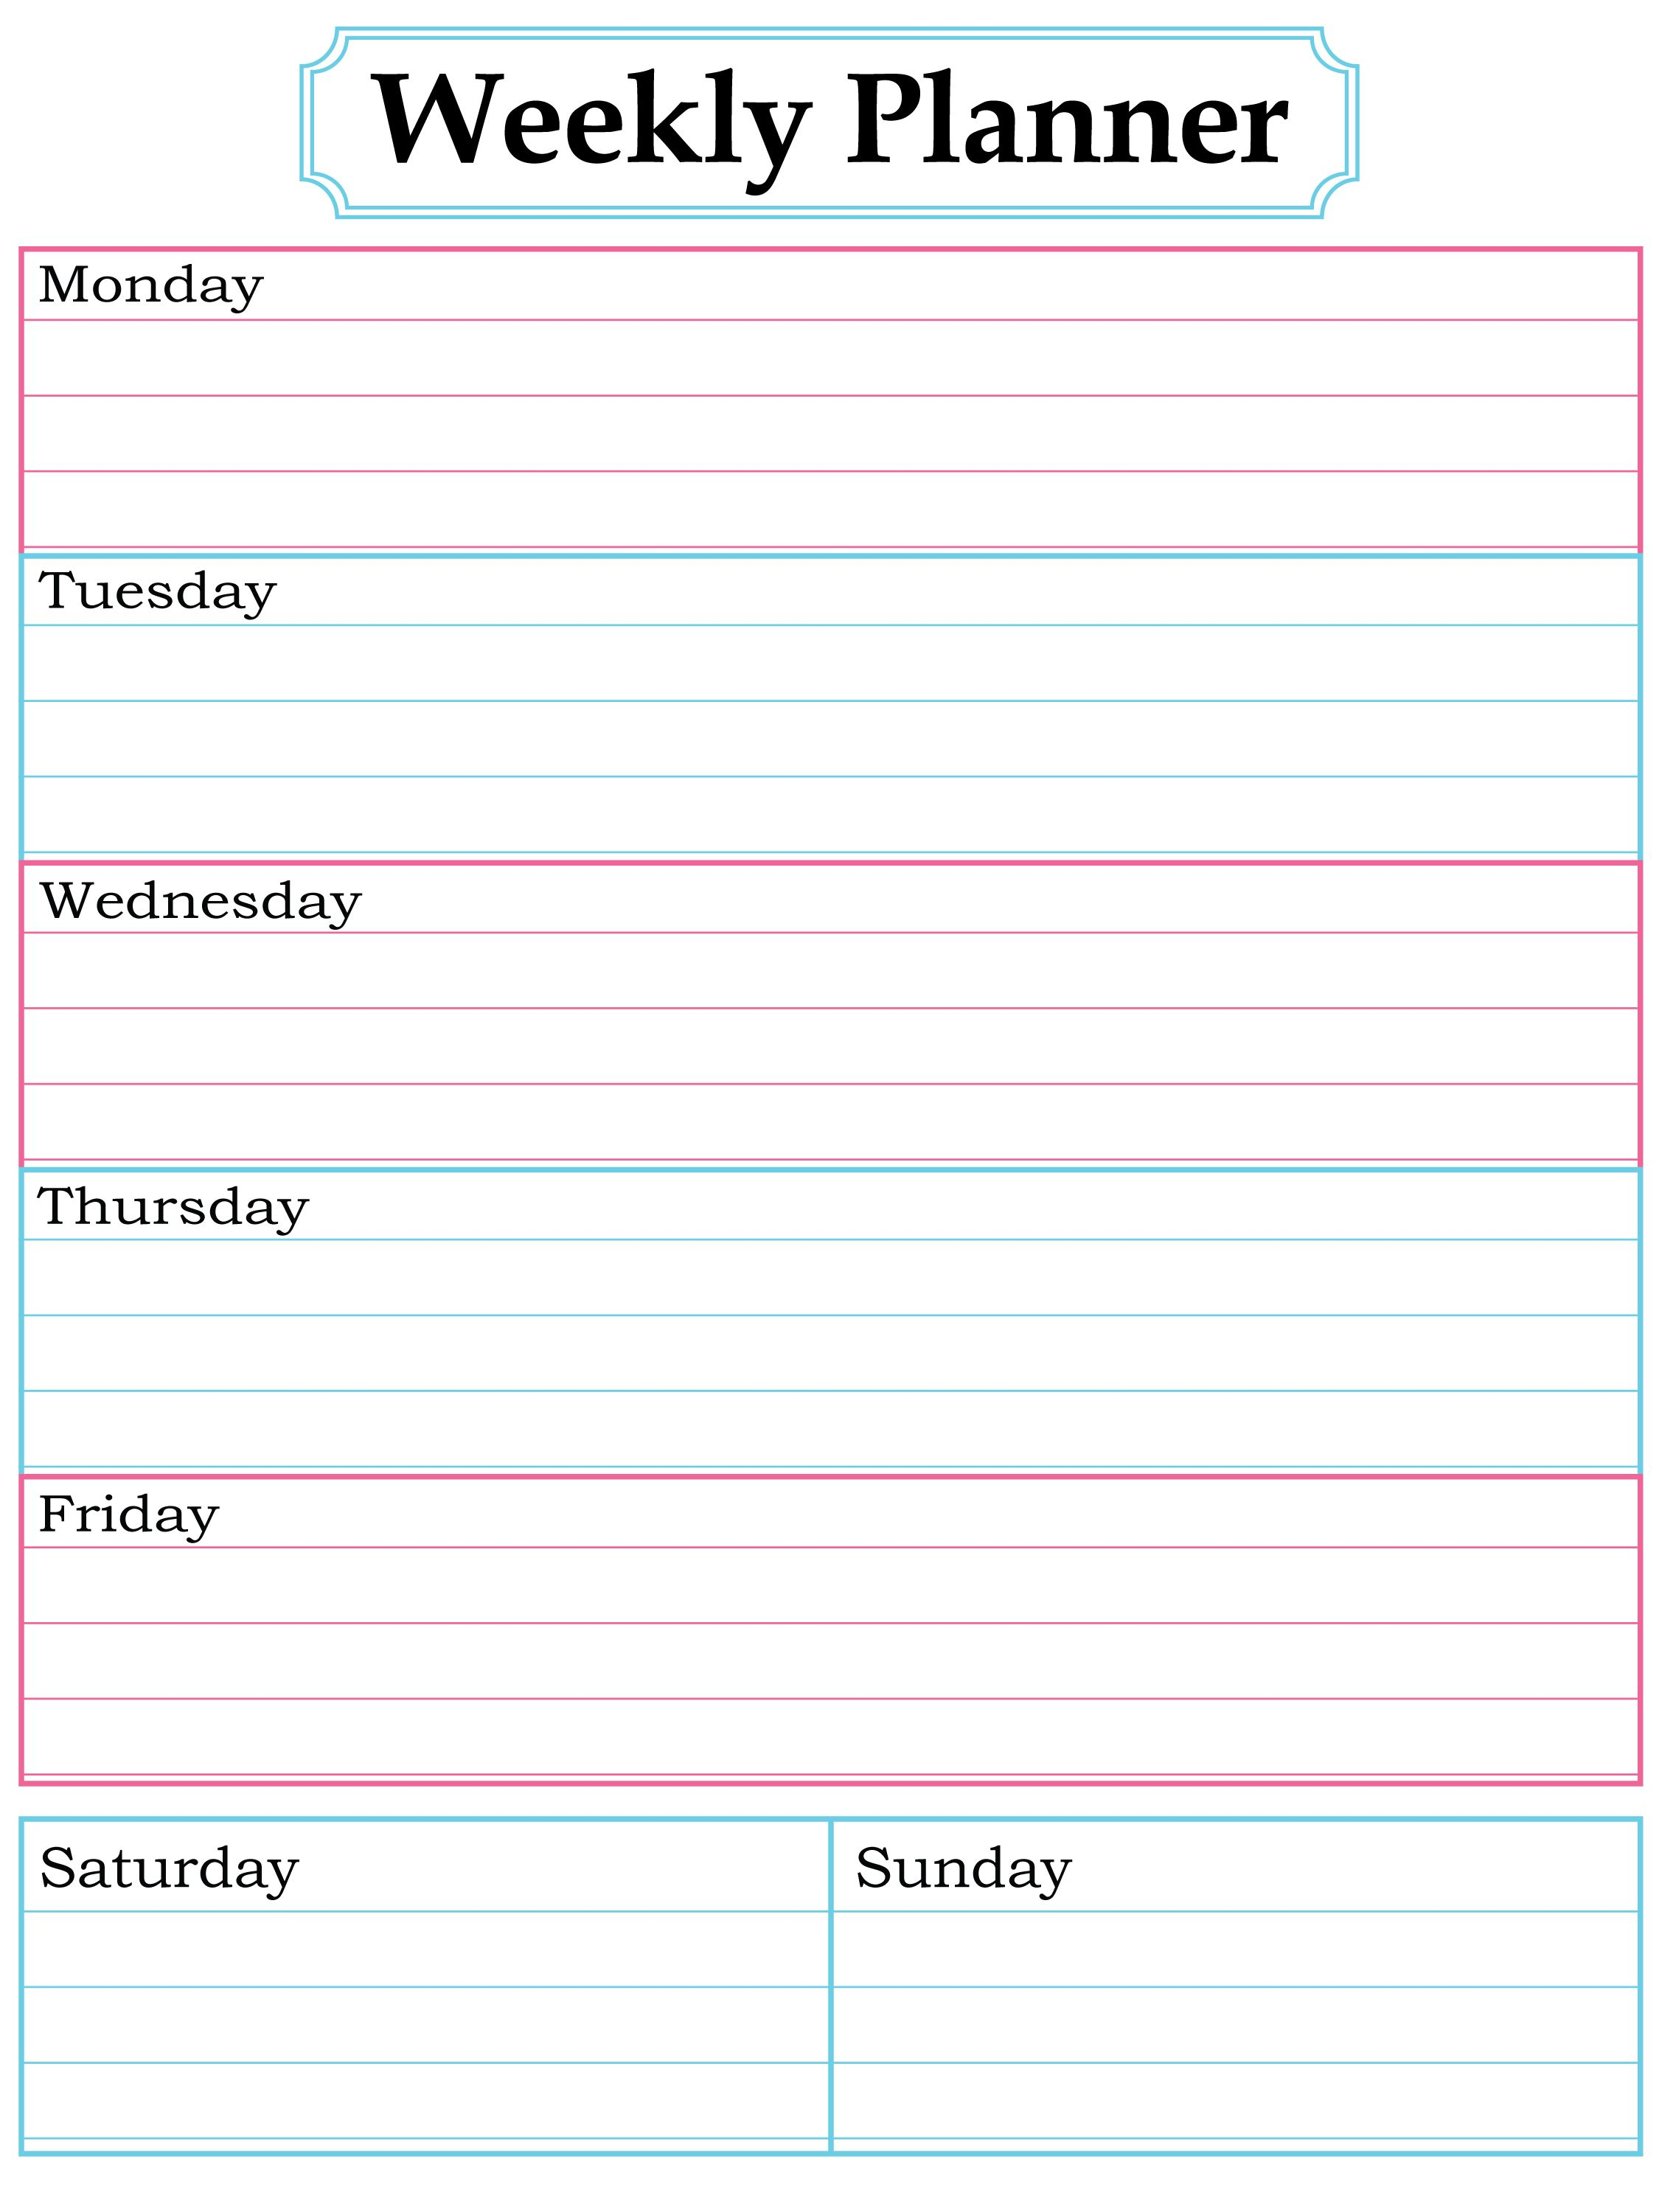 004 Free Weekly Planner Template Awful Ideas Monday To Friday within Monday Through Friday Planner Template